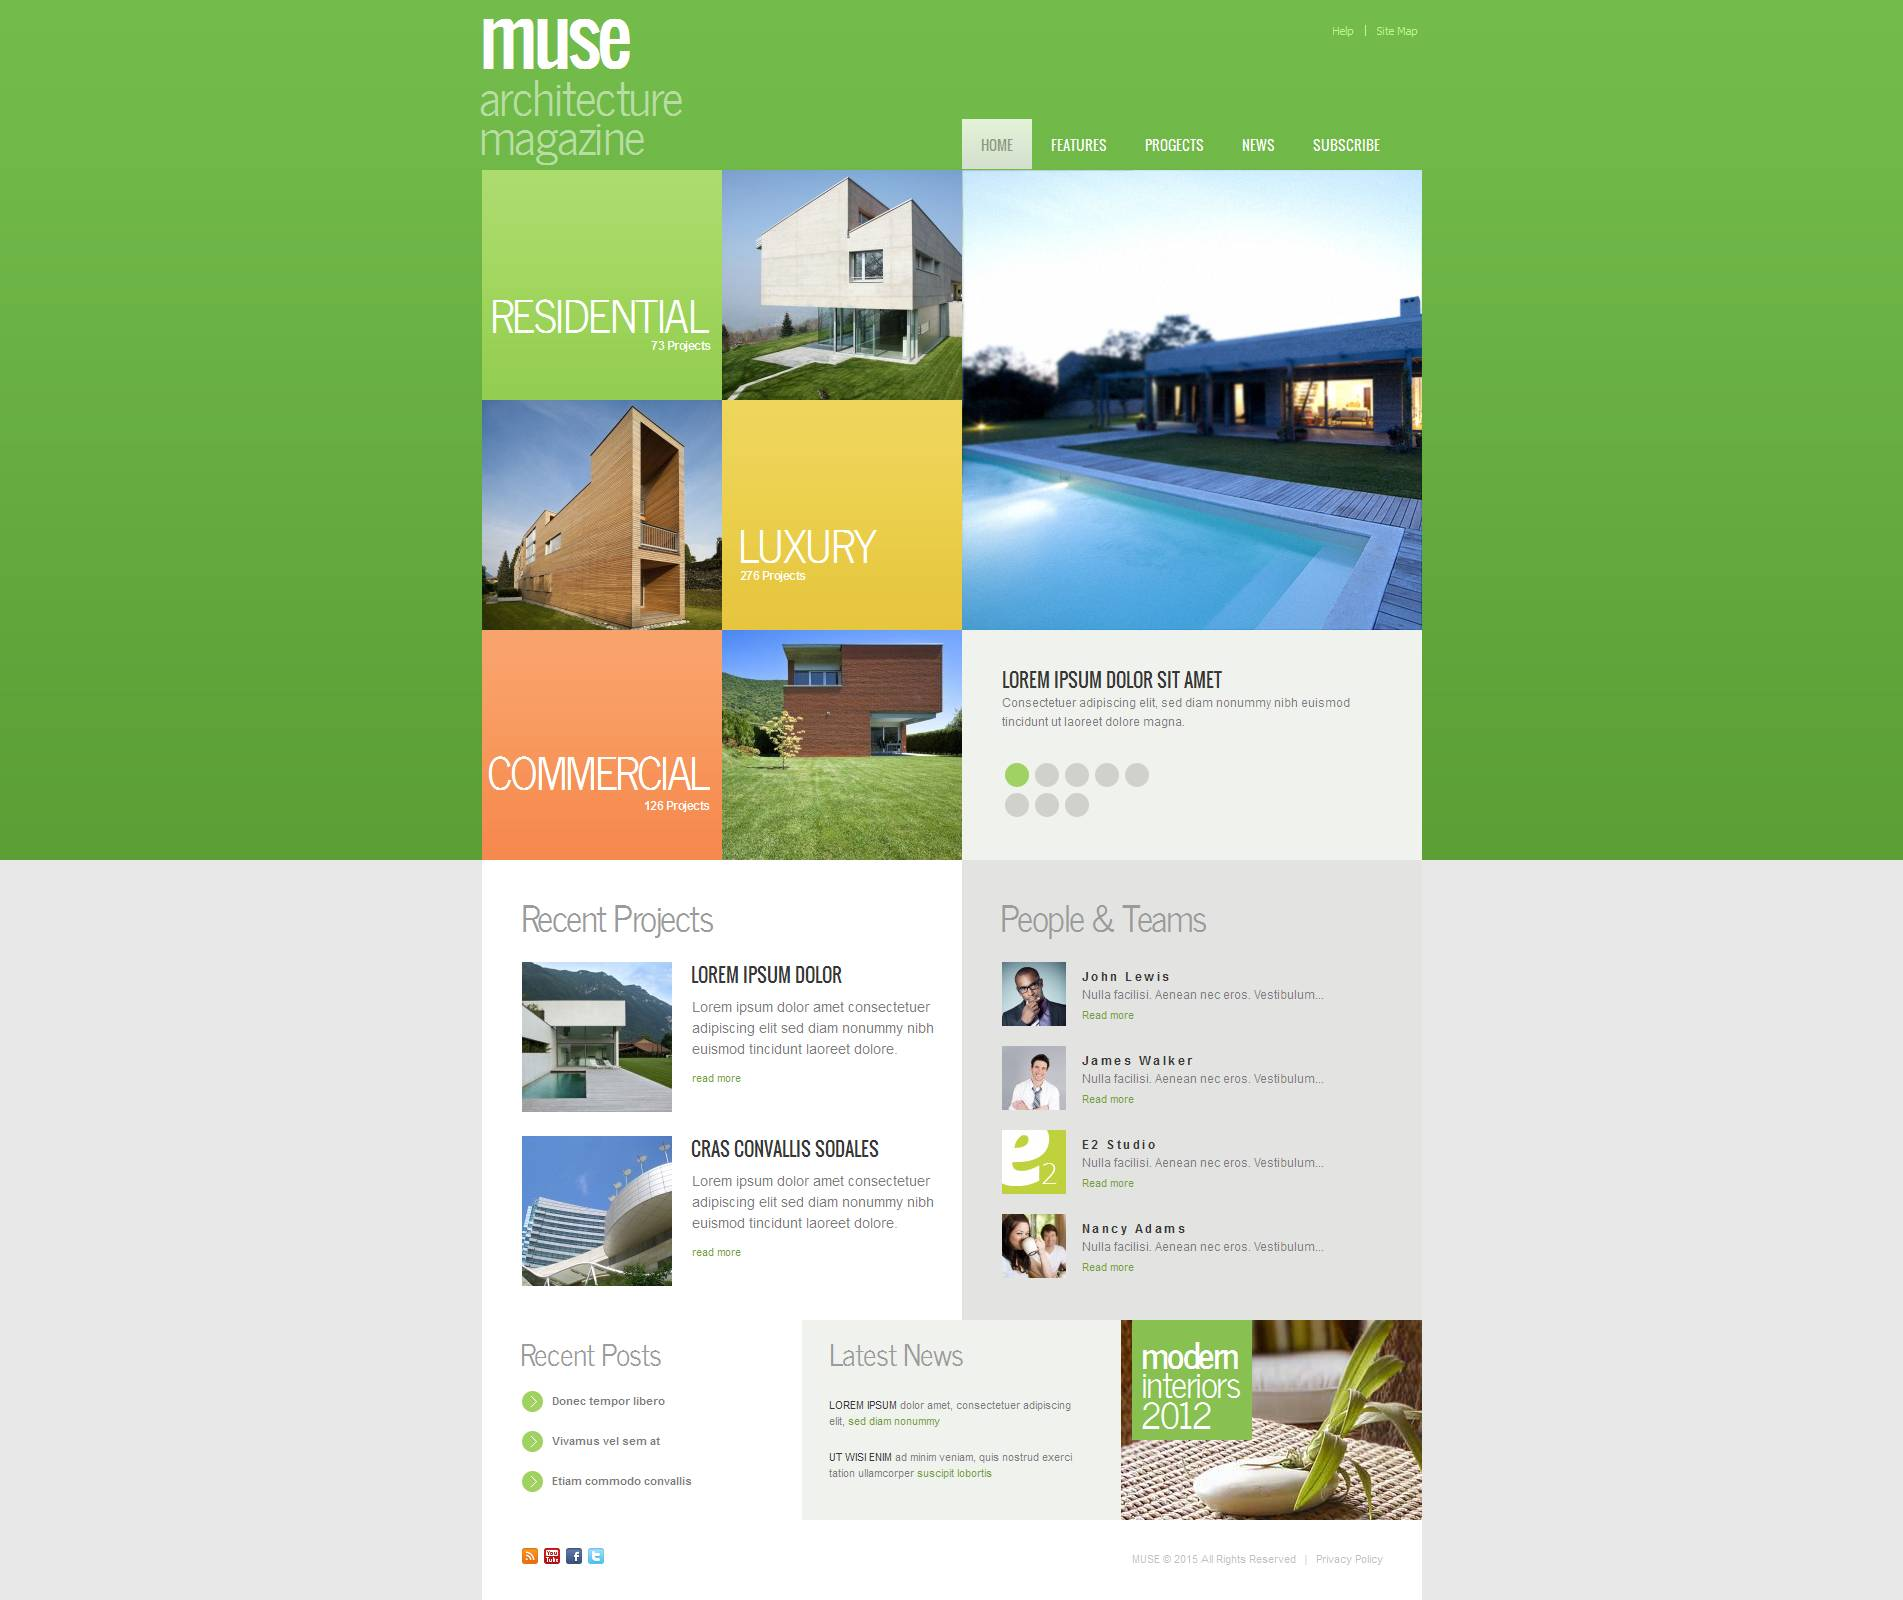 The Muse Architecture Moto CMS HTML Design 53524, one of the best Moto CMS HTML templates of its kind (architecture, most popular), also known as muse architecture Moto CMS HTML template, magazine Moto CMS HTML template, media Moto CMS HTML template, news design Moto CMS HTML template, architectural Moto CMS HTML template, buildings Moto CMS HTML template, technology Moto CMS HTML template, innovation Moto CMS HTML template, skyscrapers Moto CMS HTML template, projects Moto CMS HTML template, constructions Moto CMS HTML template, houses Moto CMS HTML template, work Moto CMS HTML template, team Moto CMS HTML template, strategy Moto CMS HTML template, services Moto CMS HTML template, support Moto CMS HTML template, planning Moto CMS HTML template, custom design Moto CMS HTML template, enterprise Moto CMS HTML template, clients Moto CMS HTML template, partners Moto CMS HTML template, esteem and related with muse architecture, magazine, media, news design, architectural, buildings, technology, innovation, skyscrapers, projects, constructions, houses, work, team, strategy, services, support, planning, custom design, enterprise, clients, partners, esteem, etc.